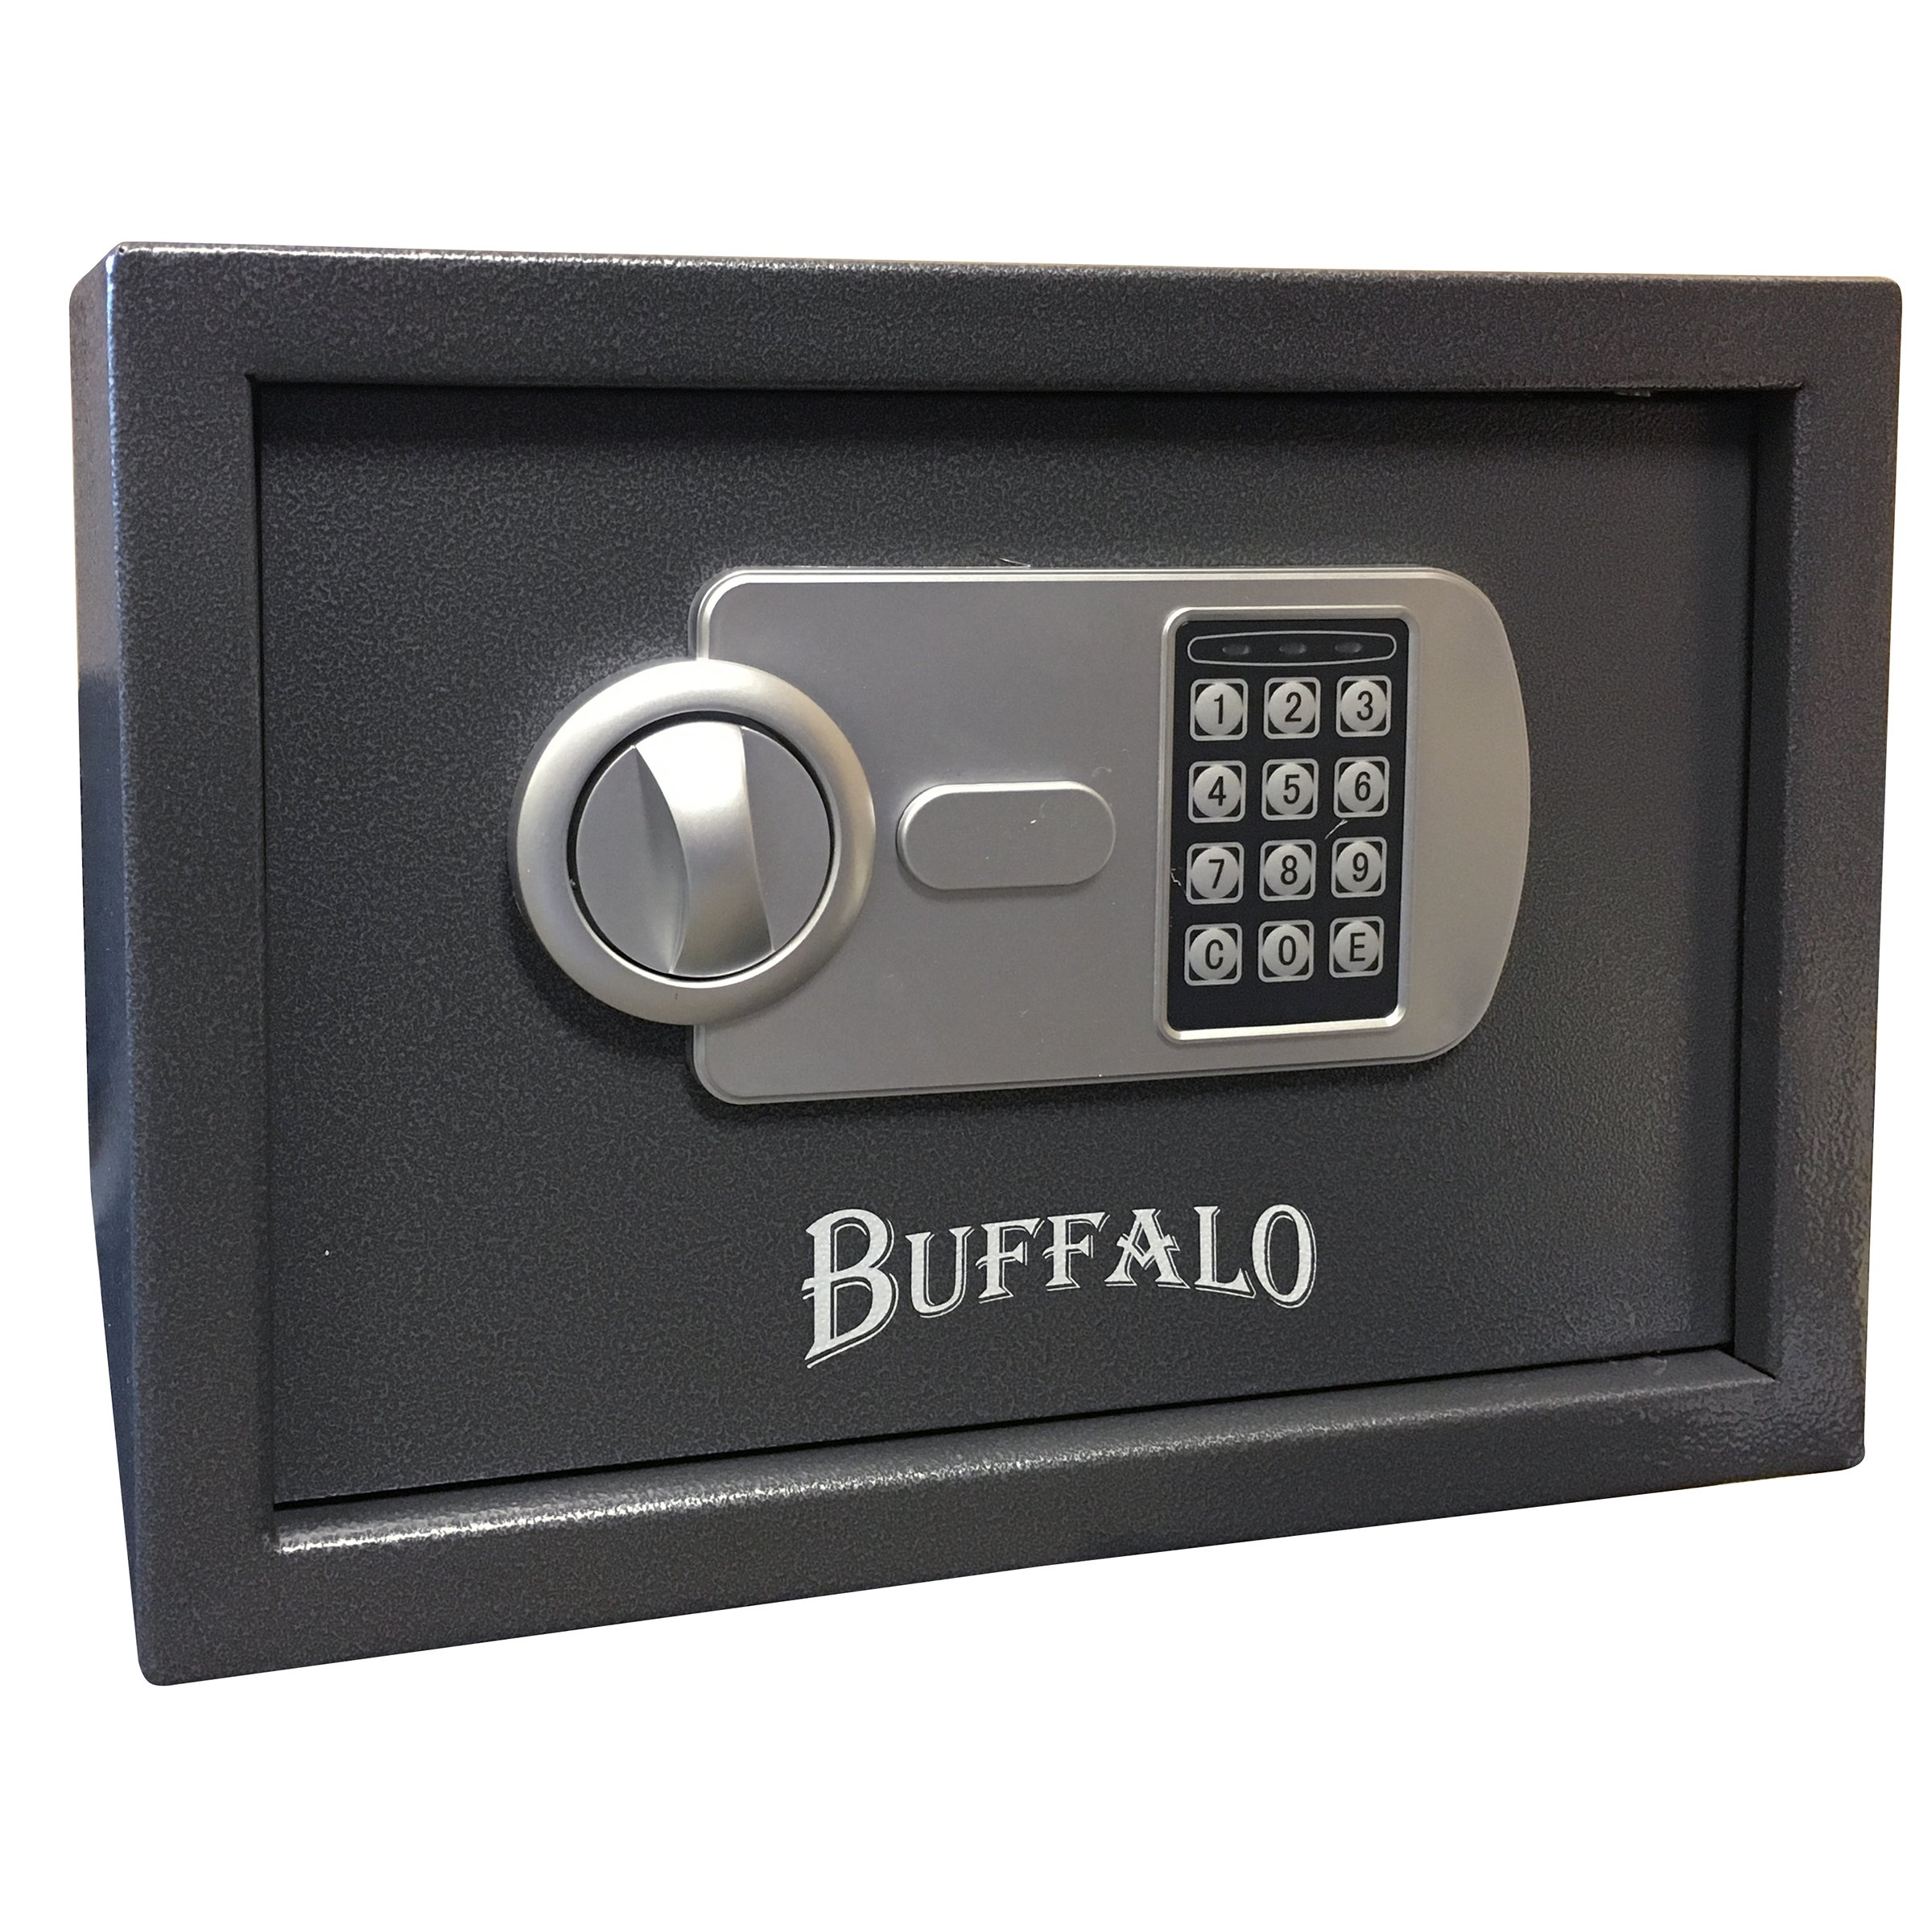 Sportsman Series PPSAFE Buffalo Outdoor Pistol Safe with Keypad Lock,